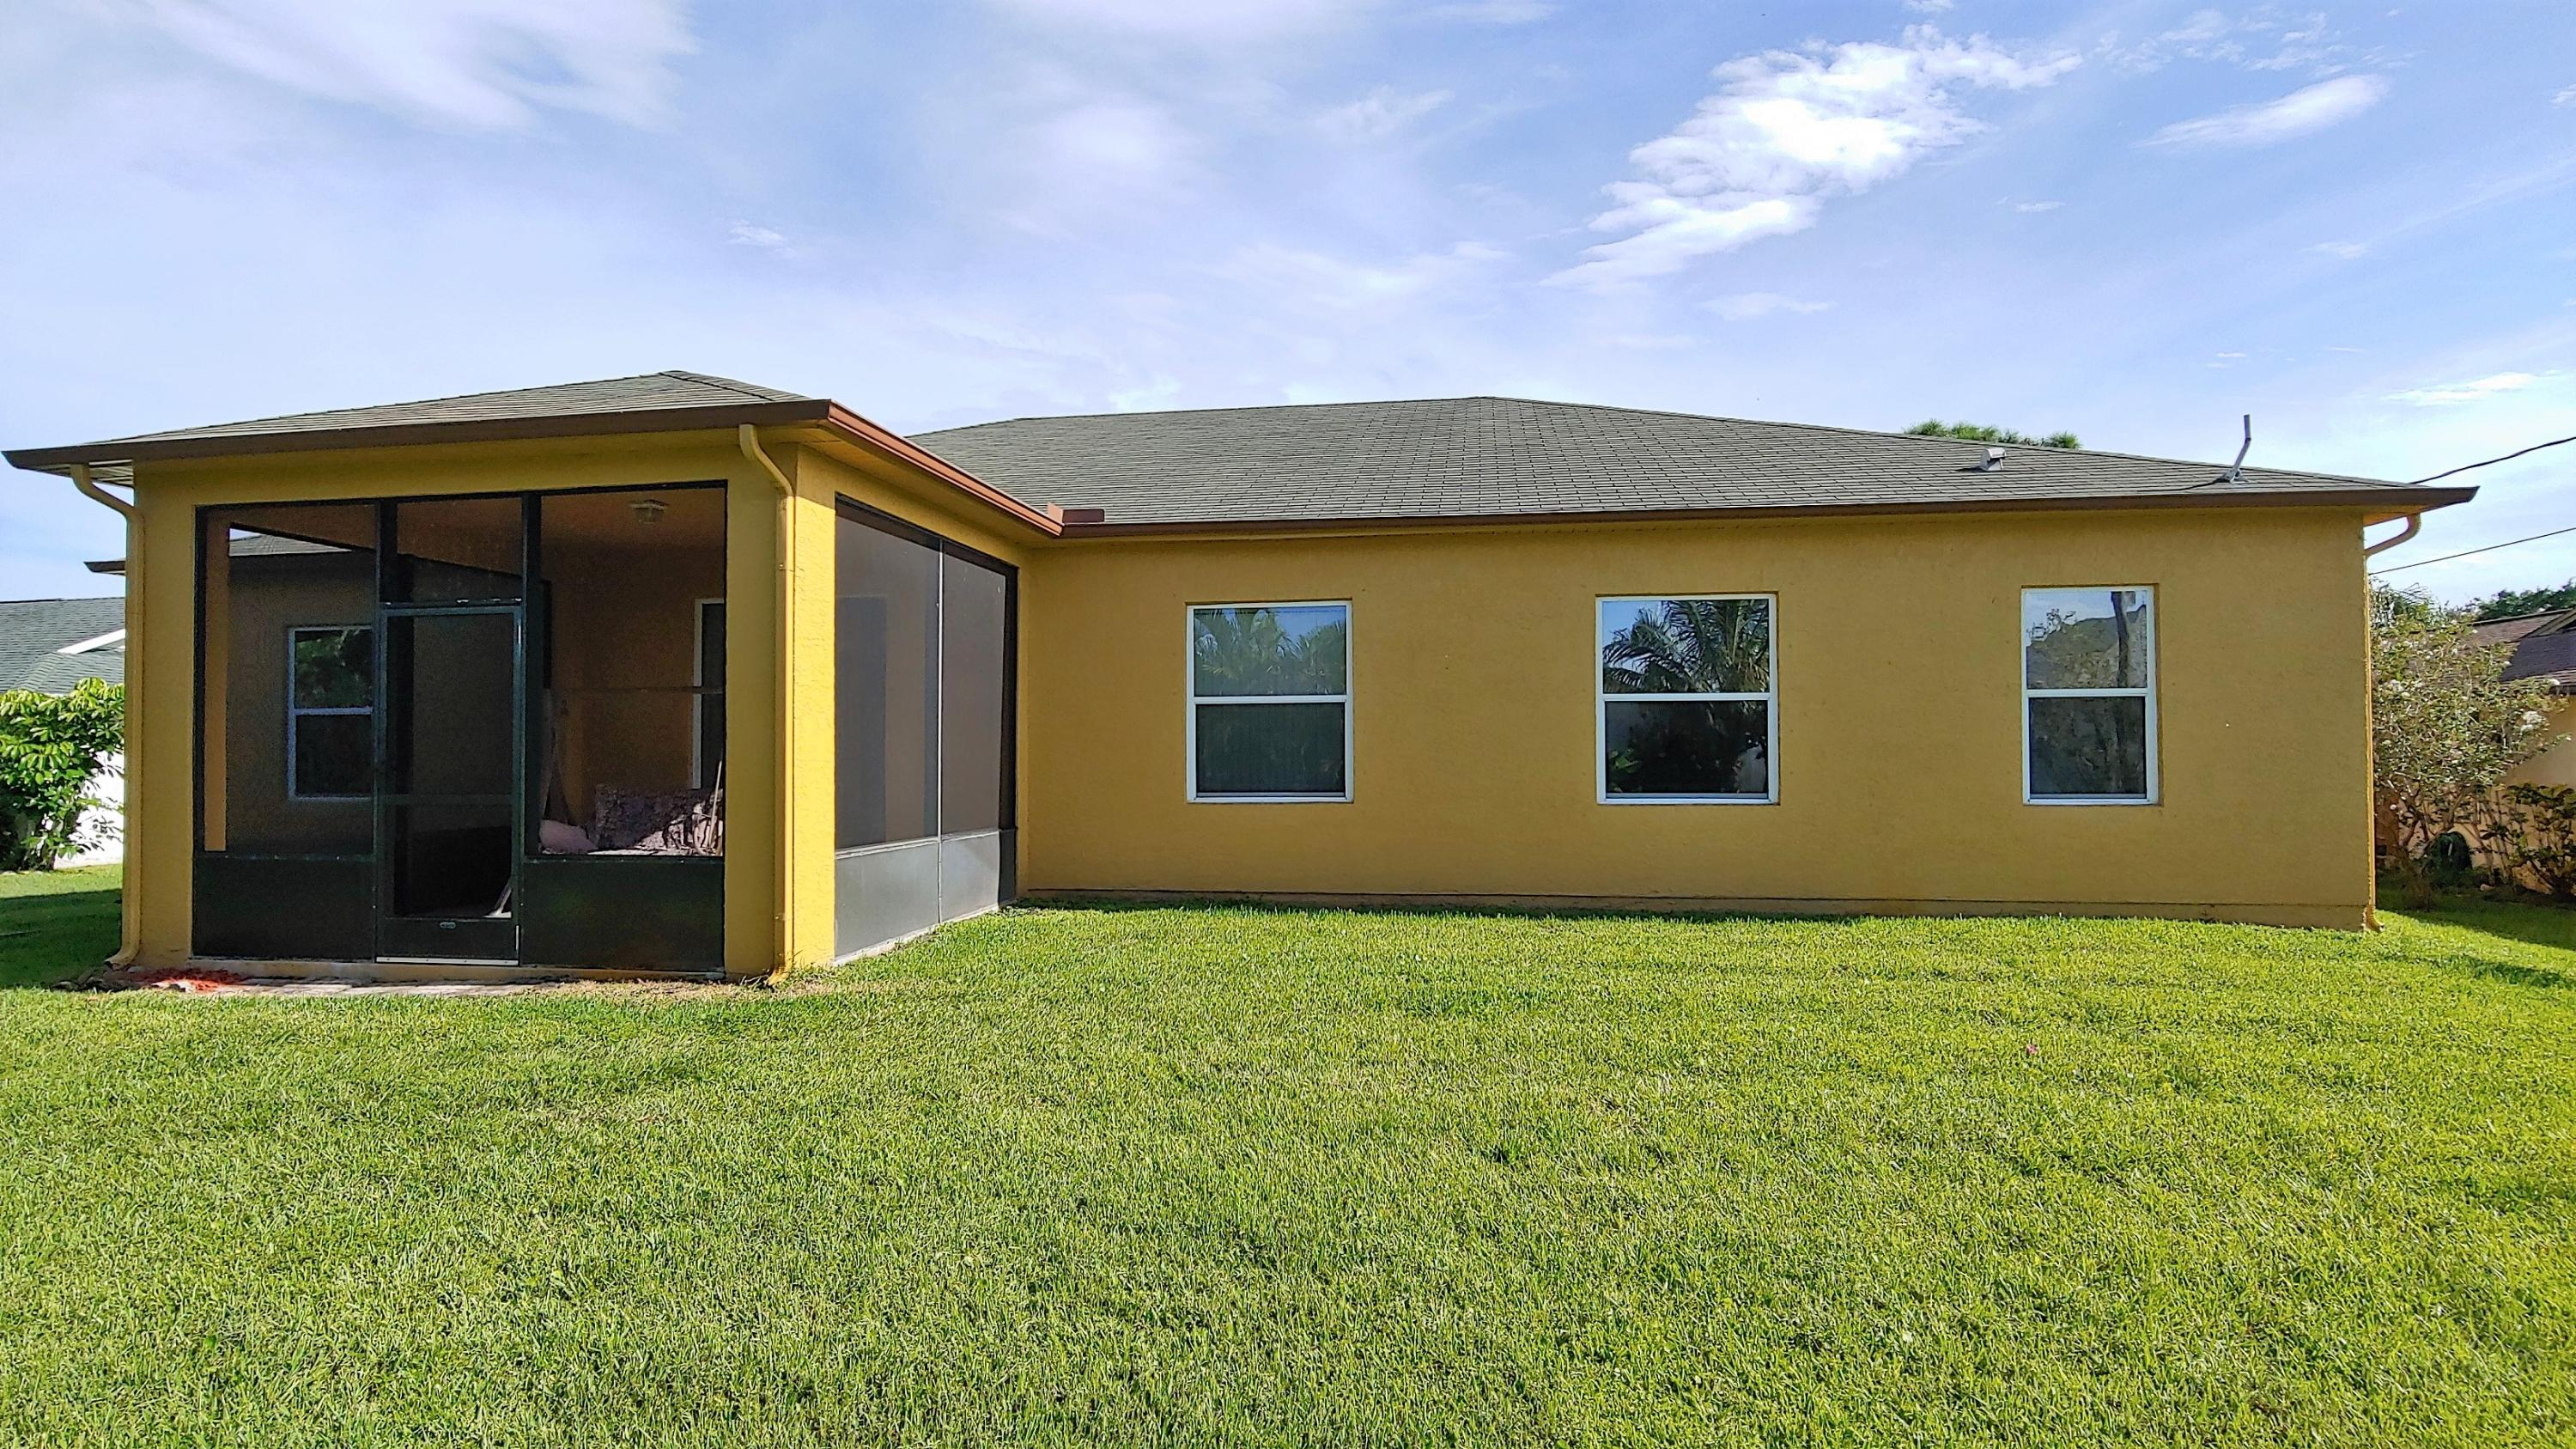 SANDPIPER BAY PORT SAINT LUCIE REAL ESTATE